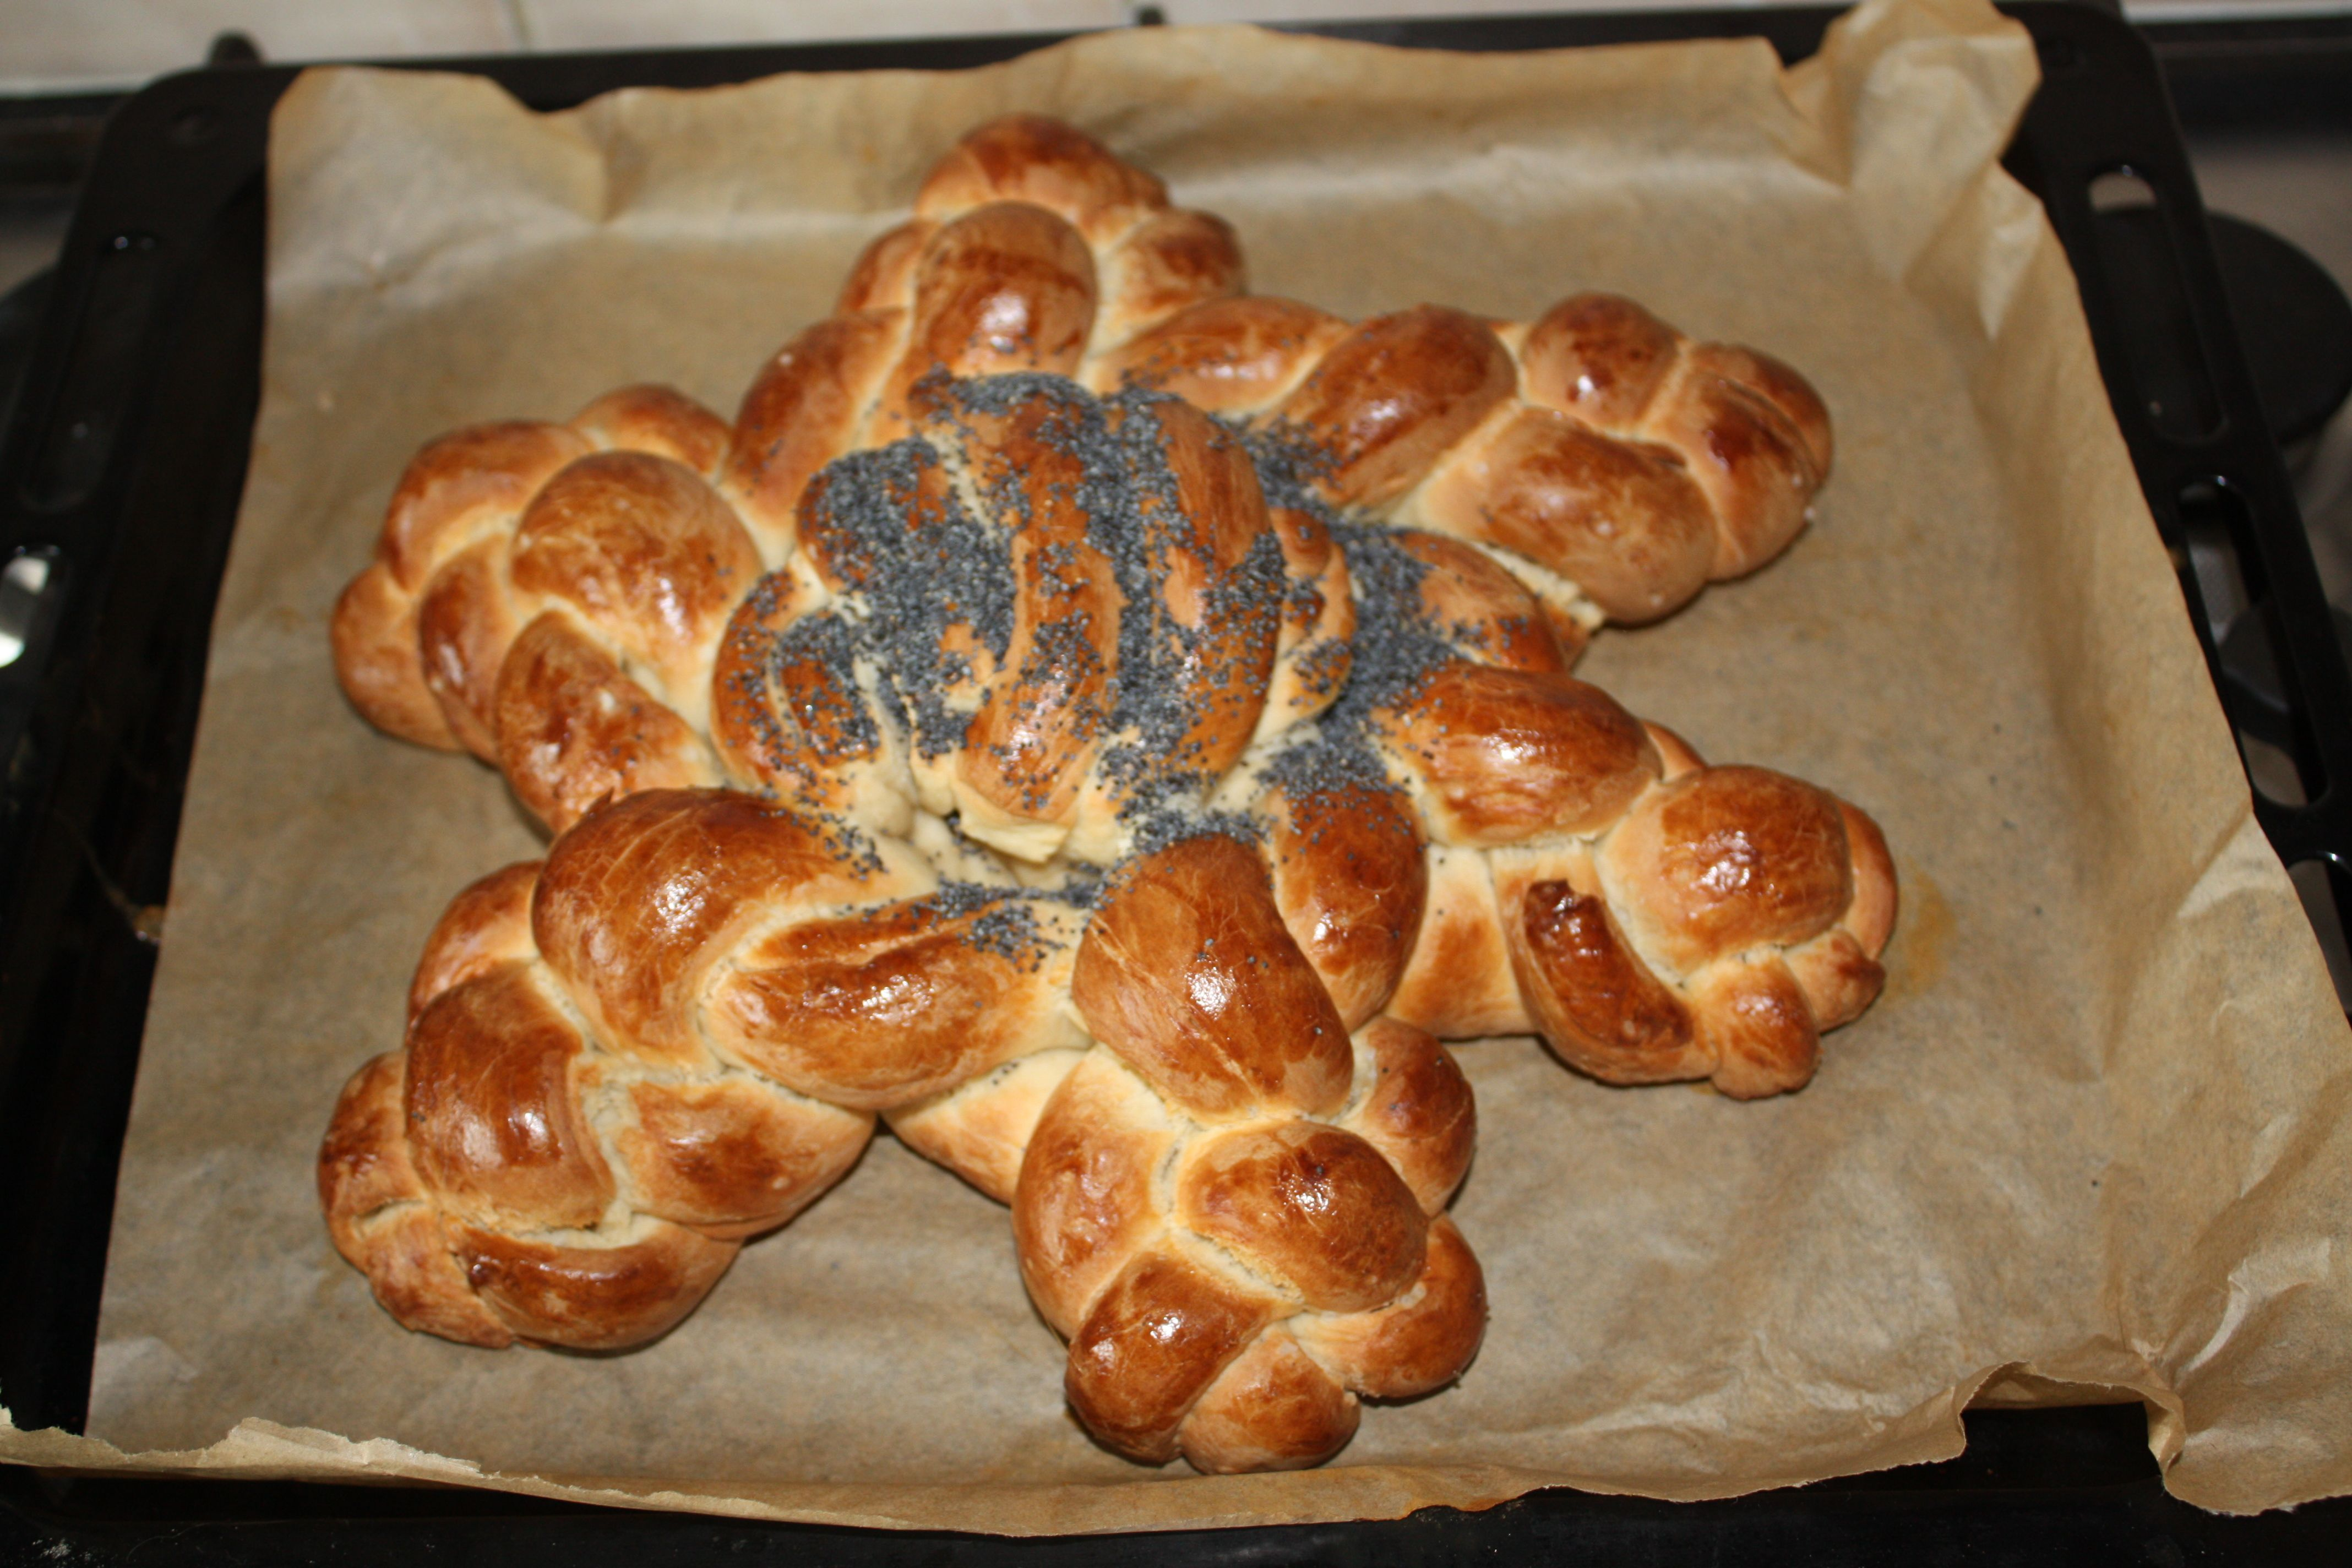 Completed bread star